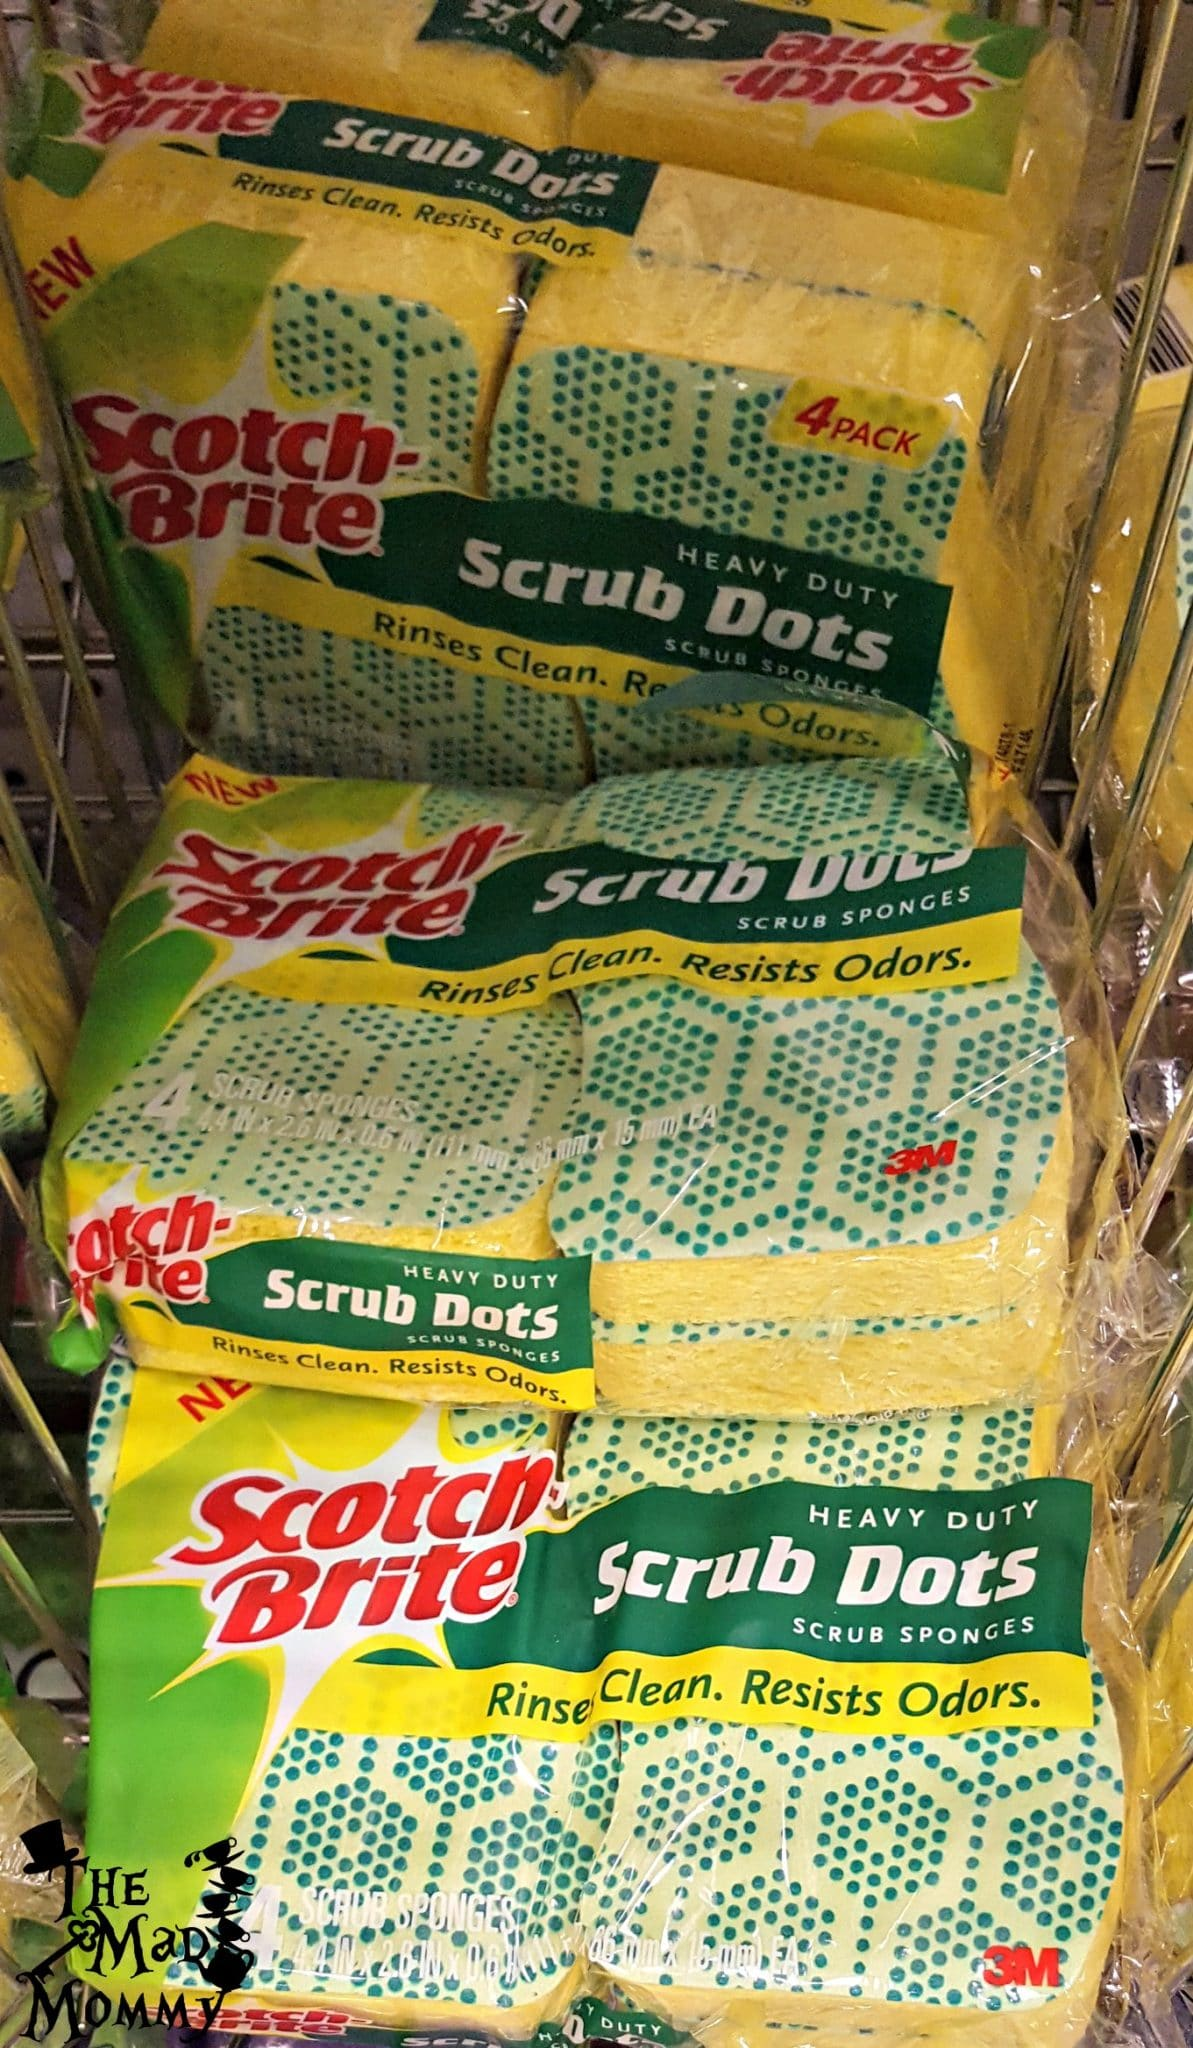 I picked up some Scotch-Brite® products to help me out in the kitchen! #ScrubDots #CollectiveBias #AD